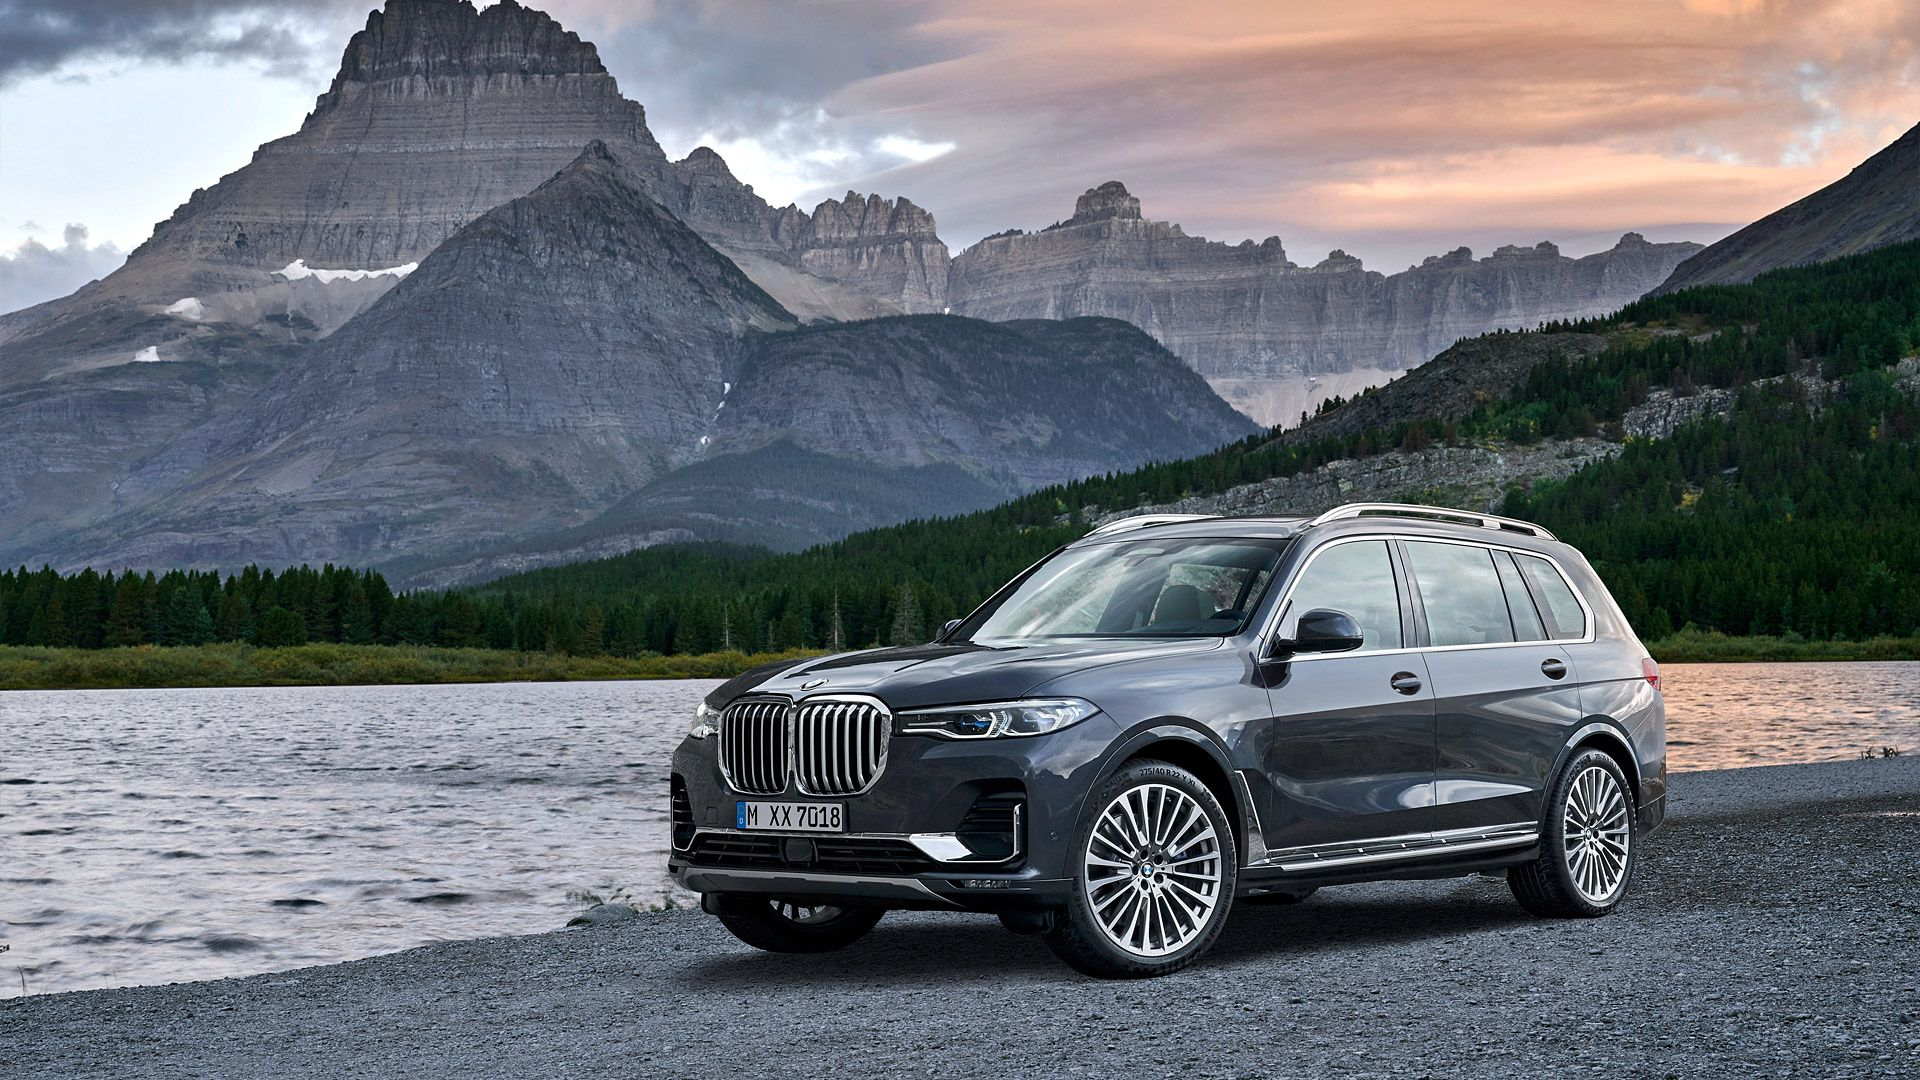 Bmw X7 Wallpapers Top Free Bmw X7 Backgrounds Wallpaperaccess